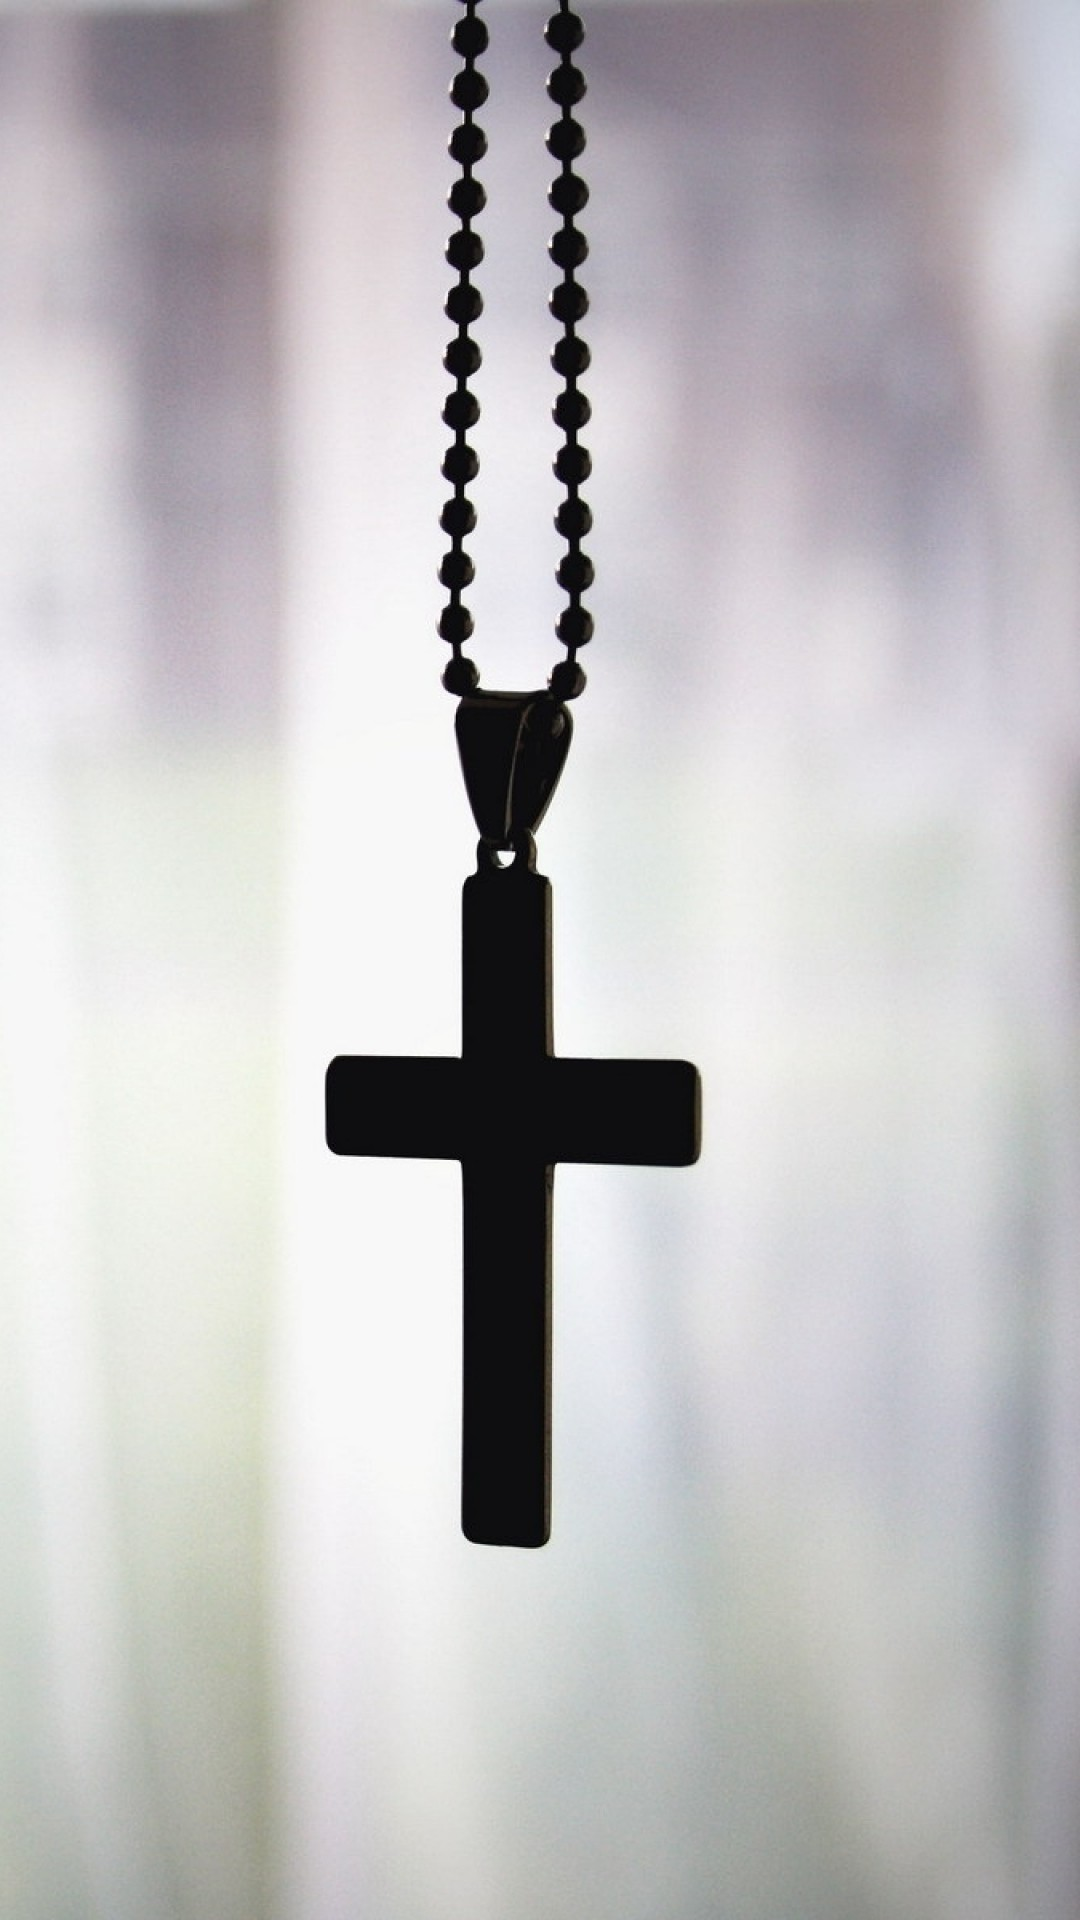 1080x1920 Preview wallpaper cross, pendant, chain, faith, christianity, orthodoxy